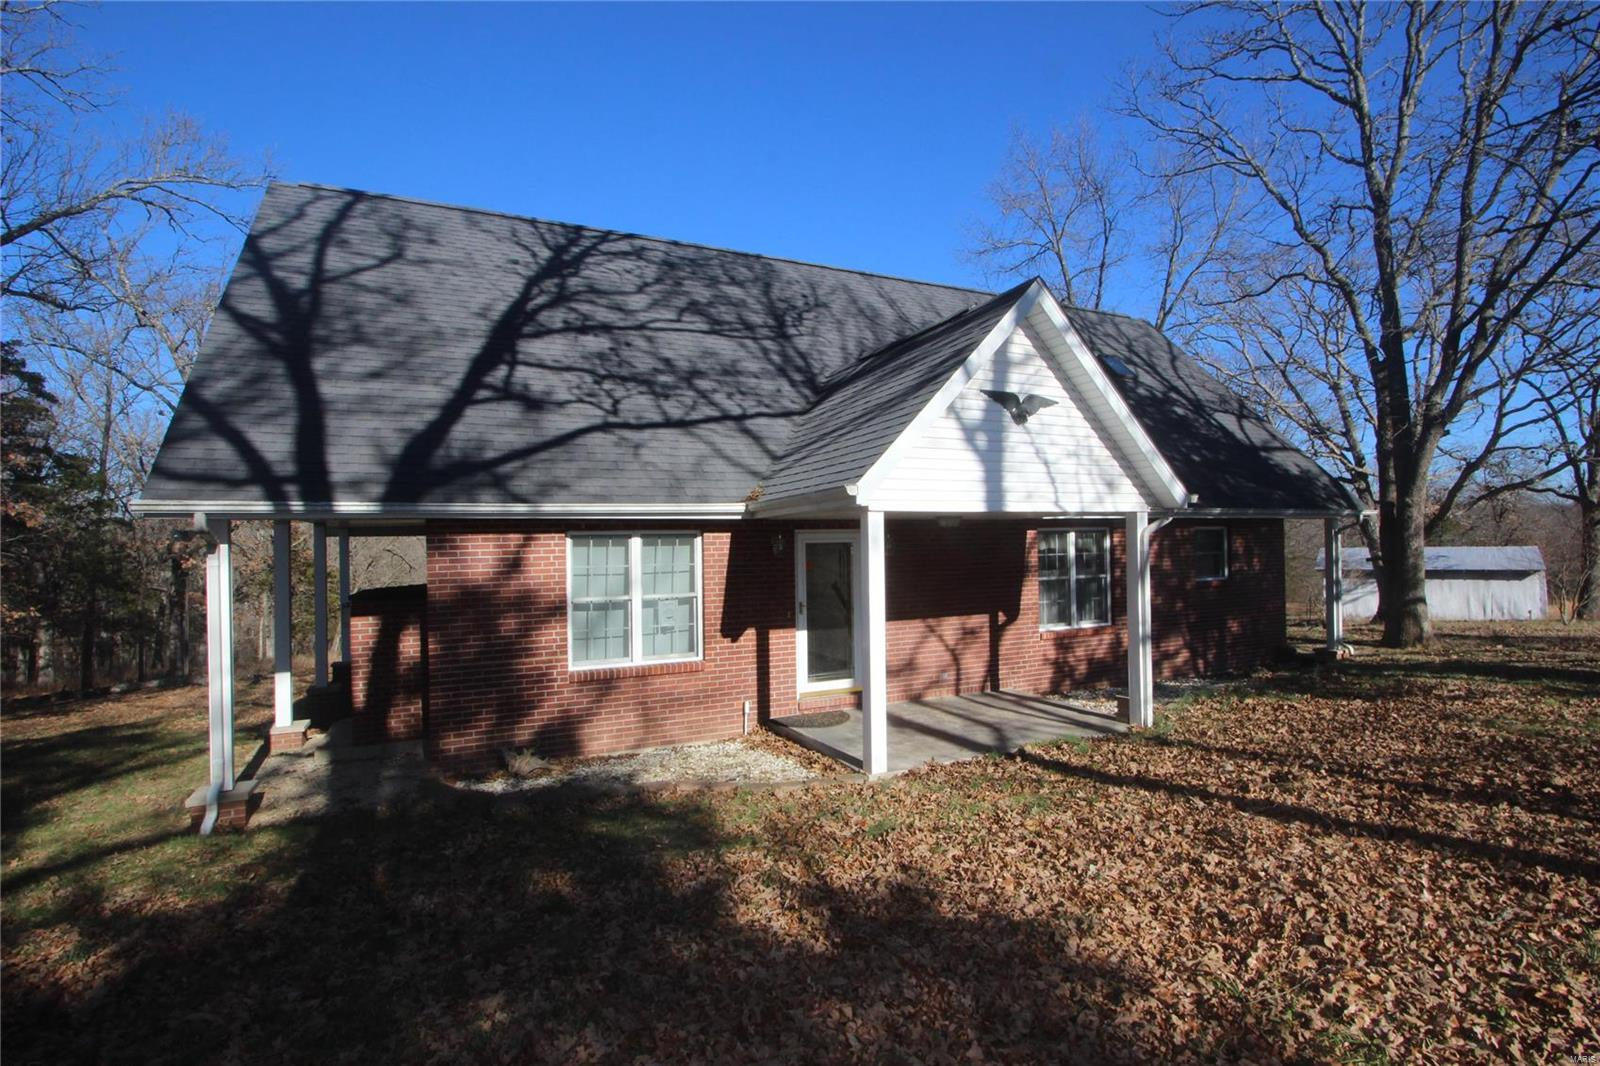 9861 Koester Springs Property Photo - Valles Mines, MO real estate listing